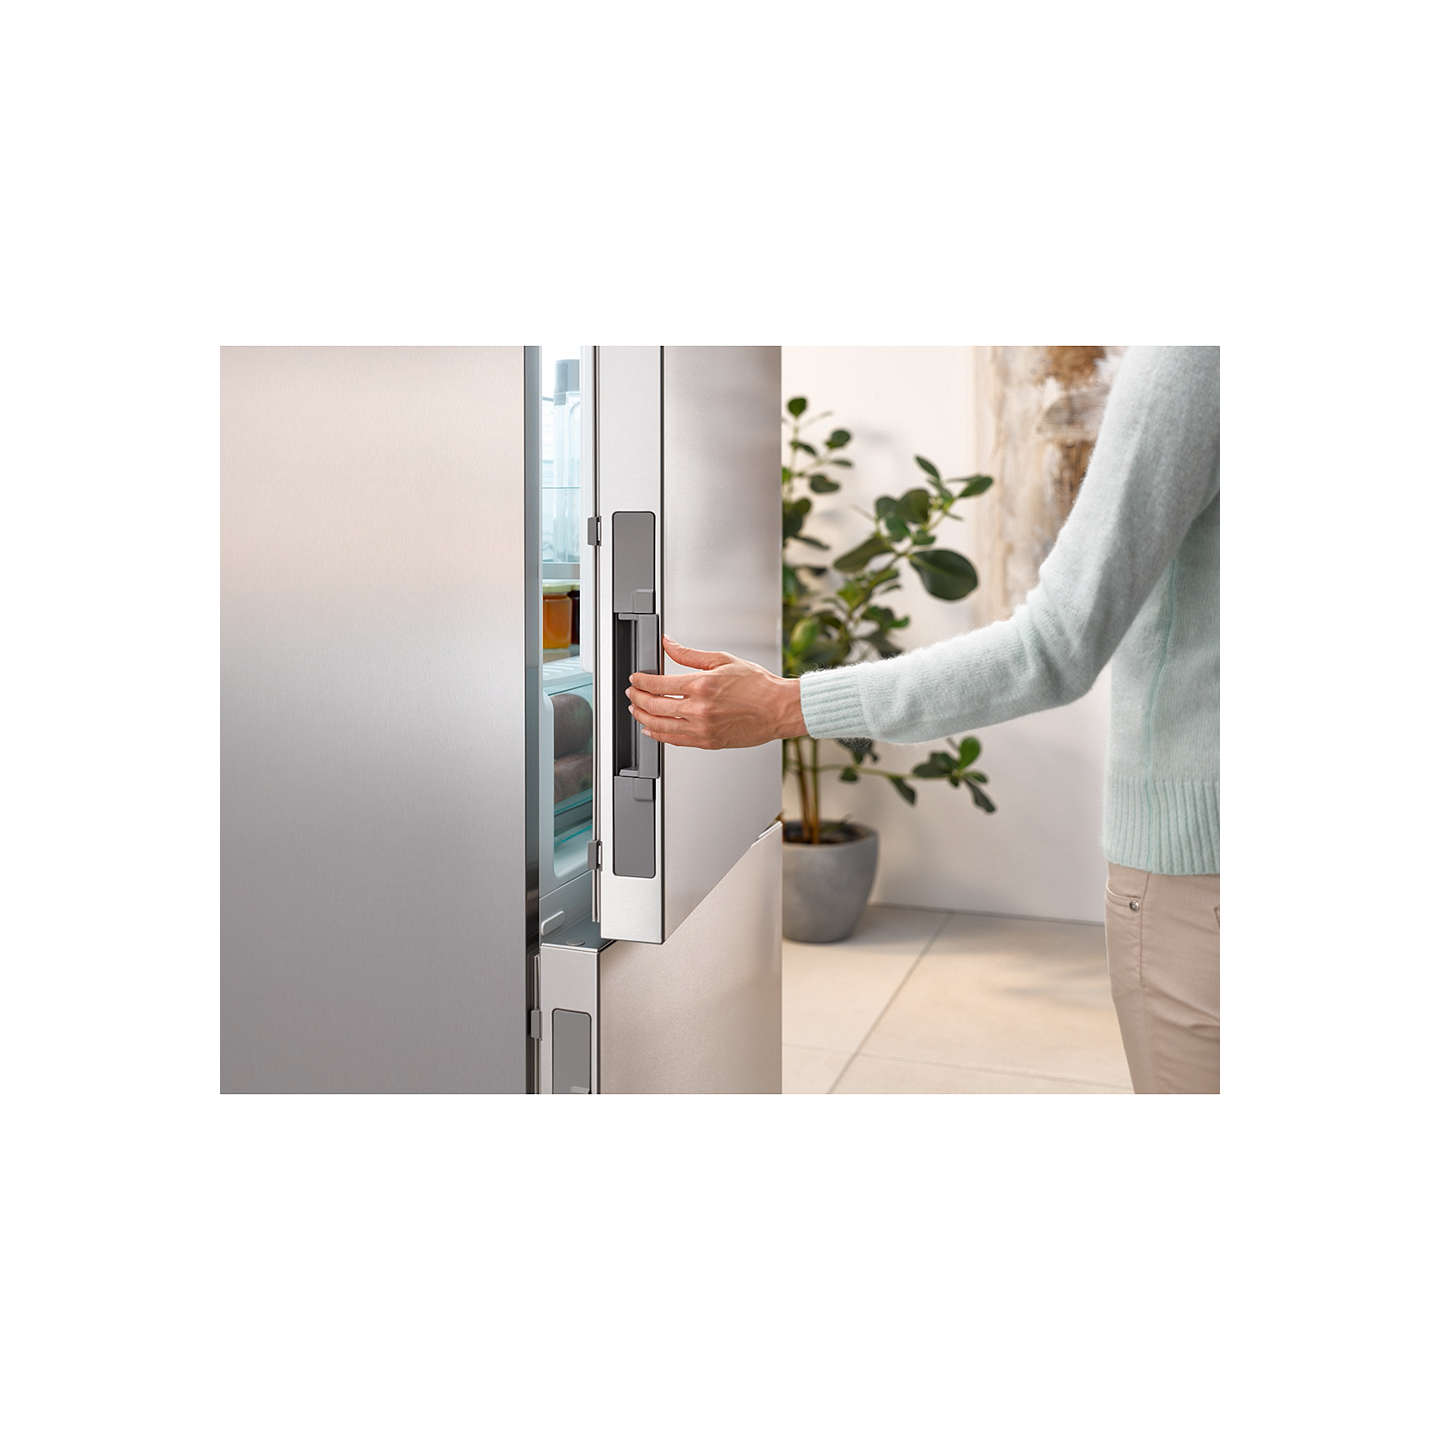 BuyMiele KFN 29233 EDT/CS Fridge Freezer, A+++ Energy Rating, 60cm Wide, Stainless Steel Online at johnlewis.com